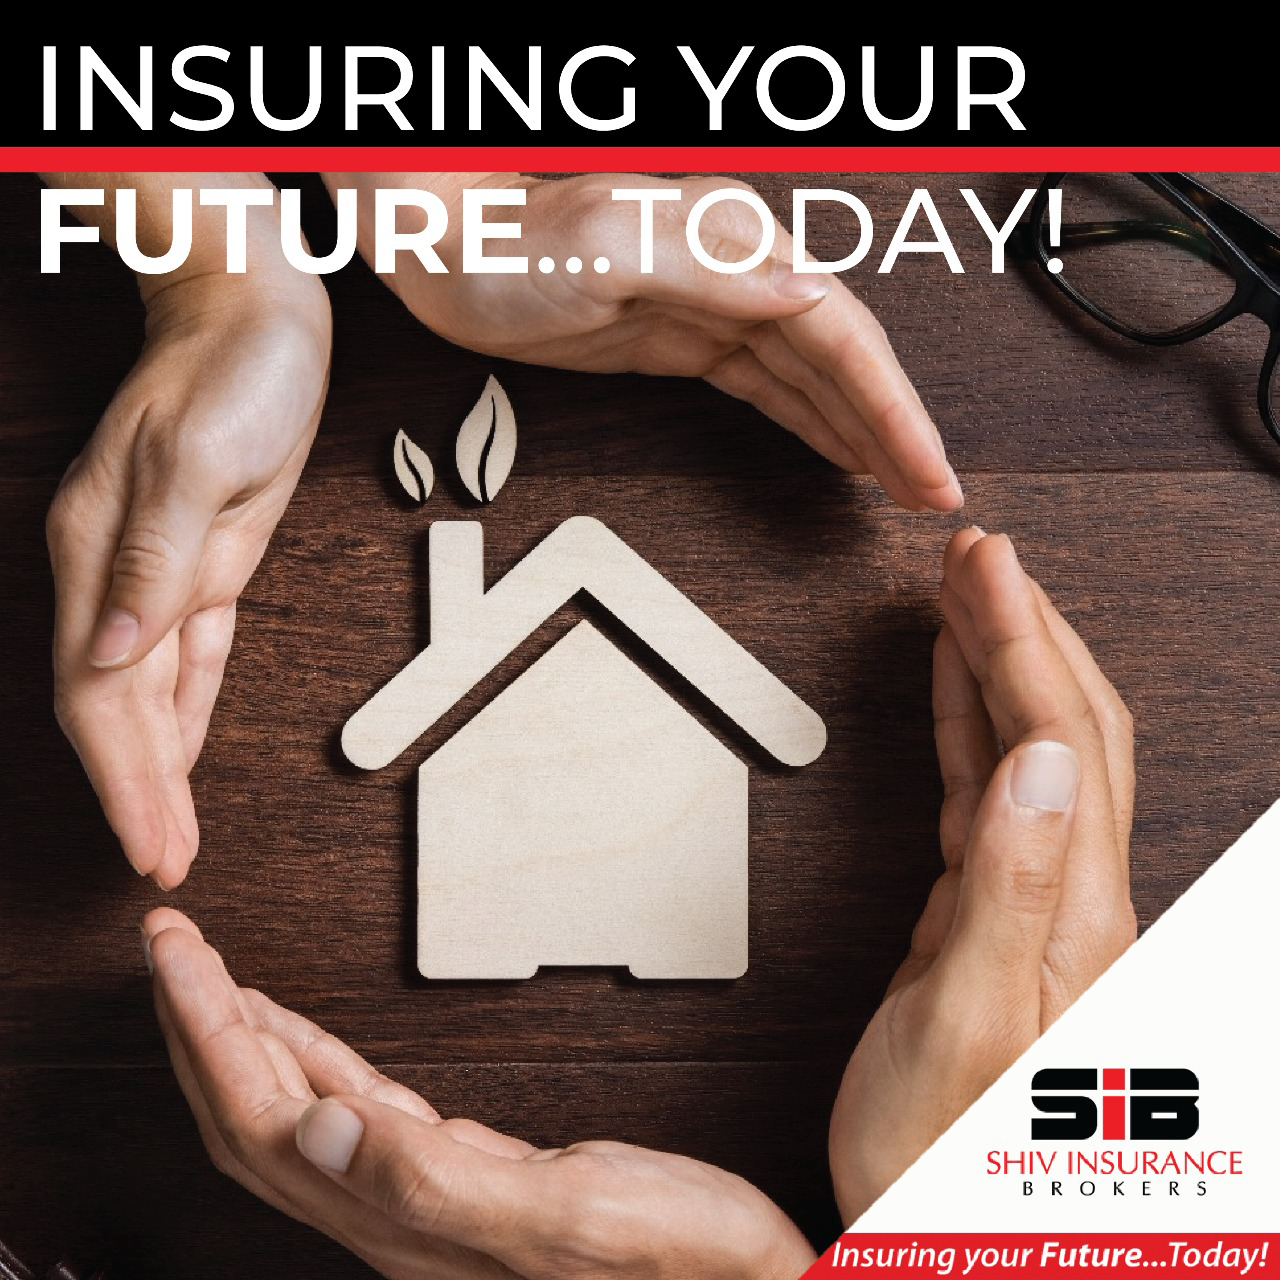 Secure your family's financial future by buying a life